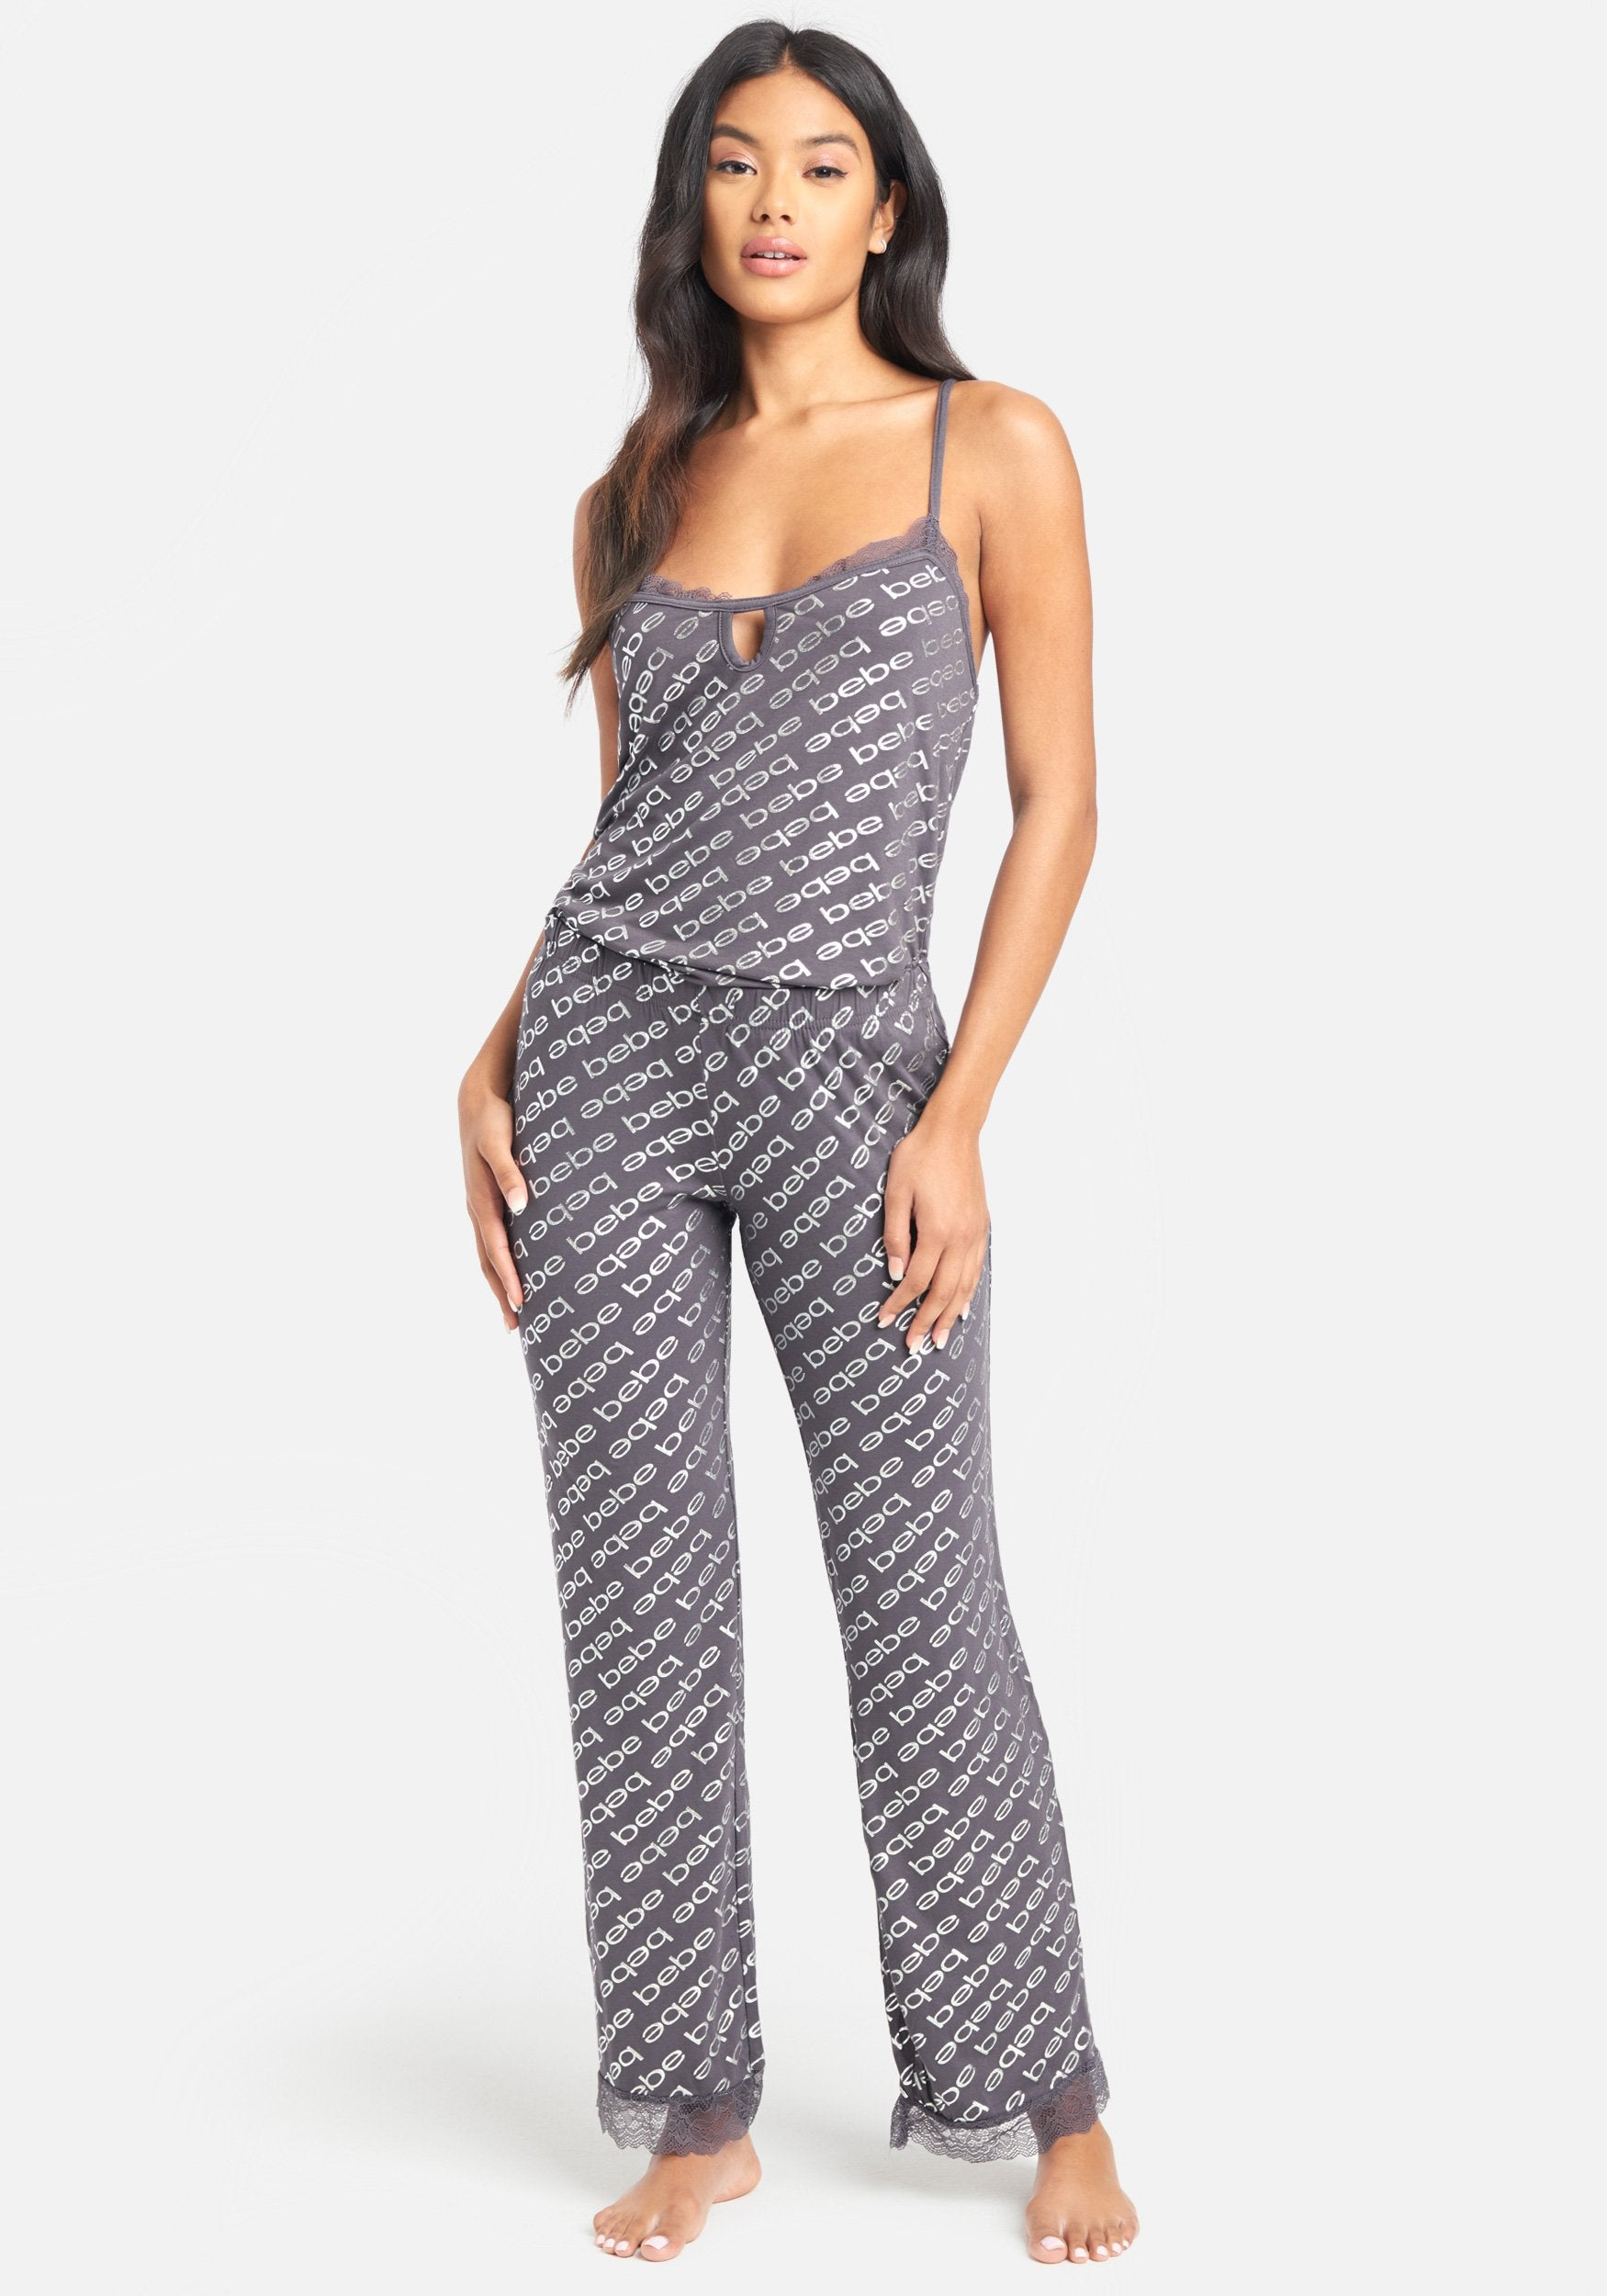 Women's Printed Bebe Foil Pant Set, Size Small in Midnight Lava Spandex